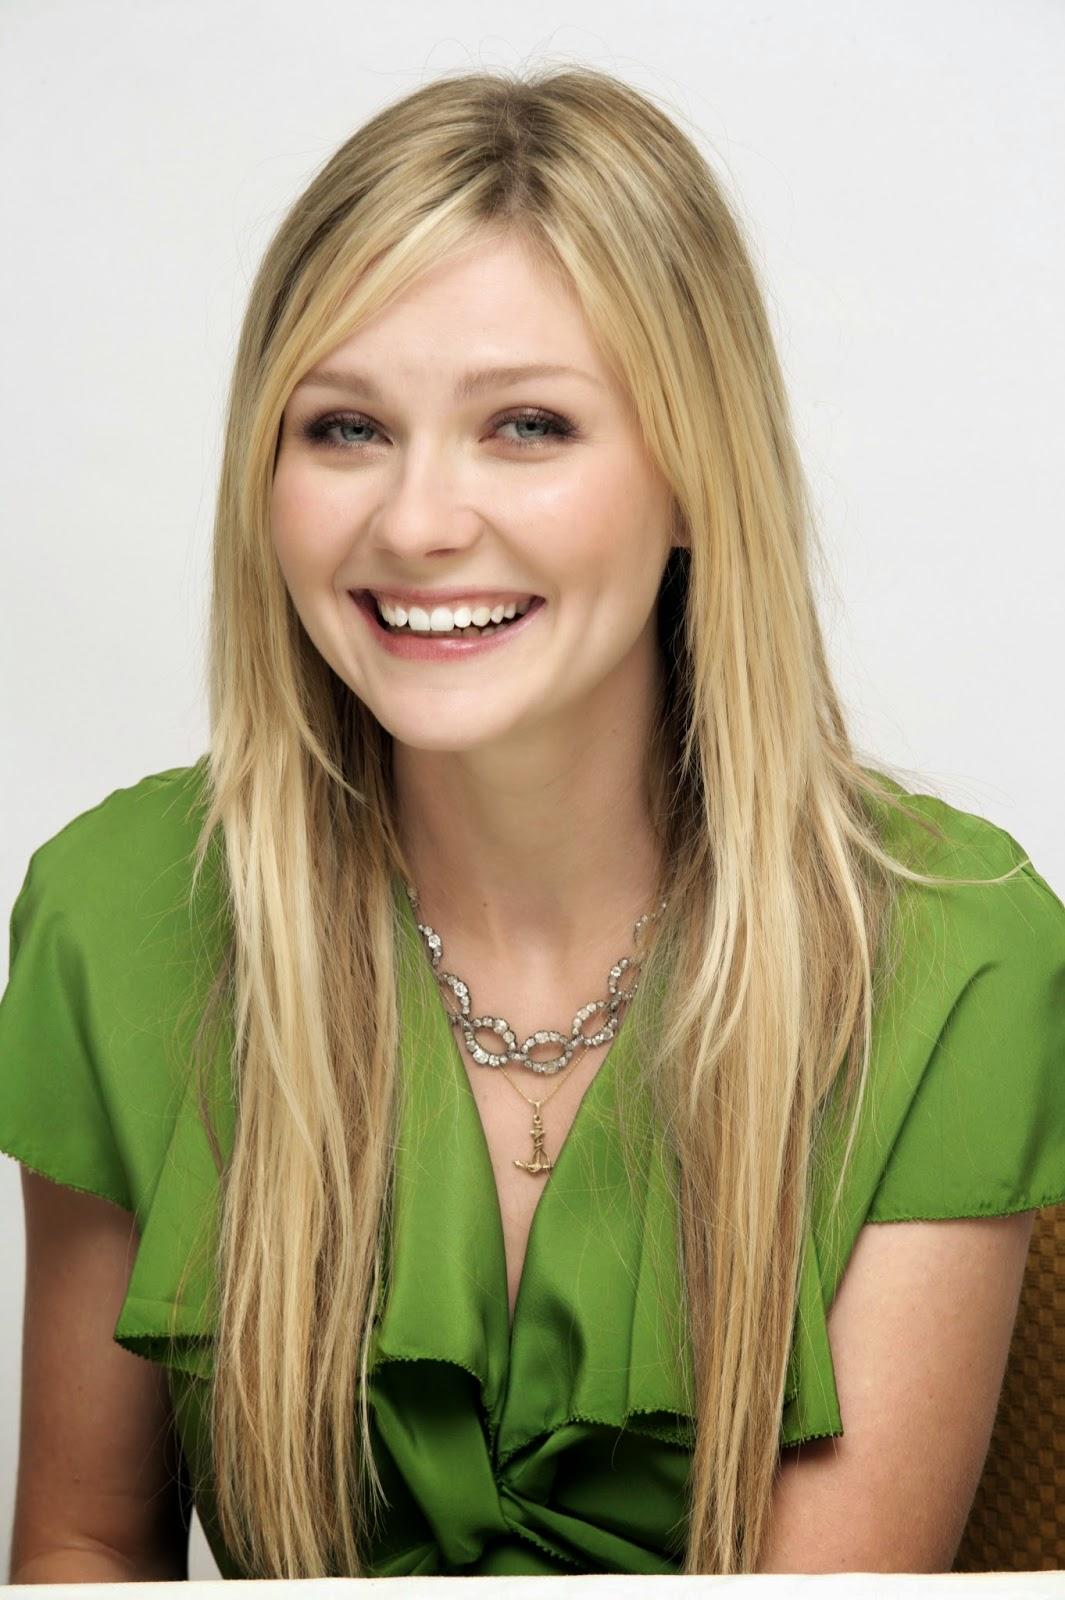 Kirsten Dunst Cute Smile Wallpaper